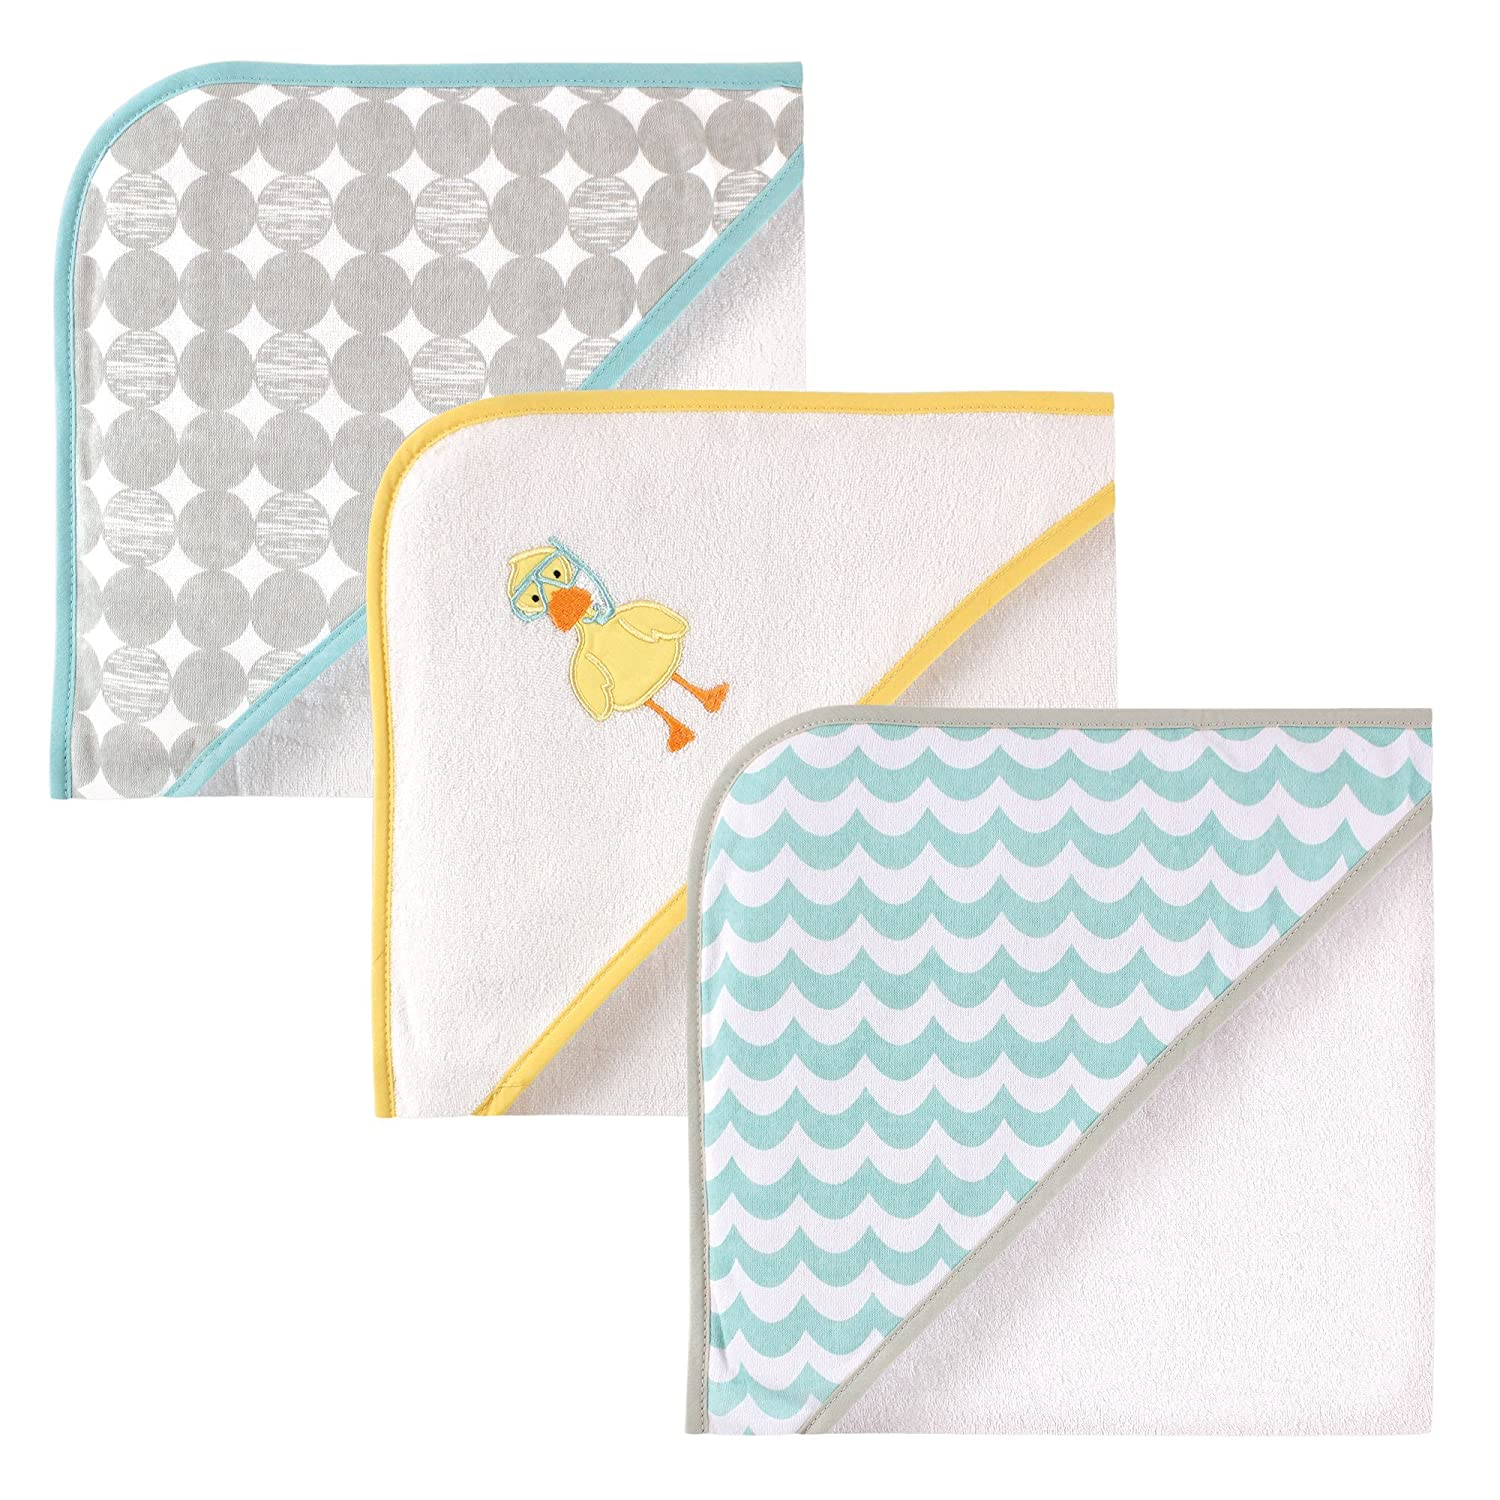 Luvable Friends 3 Piece Hooded Towels, Scuba Duck 30X30 Scuba Duck 30X30 BabyVision 05254_ScubaDuck